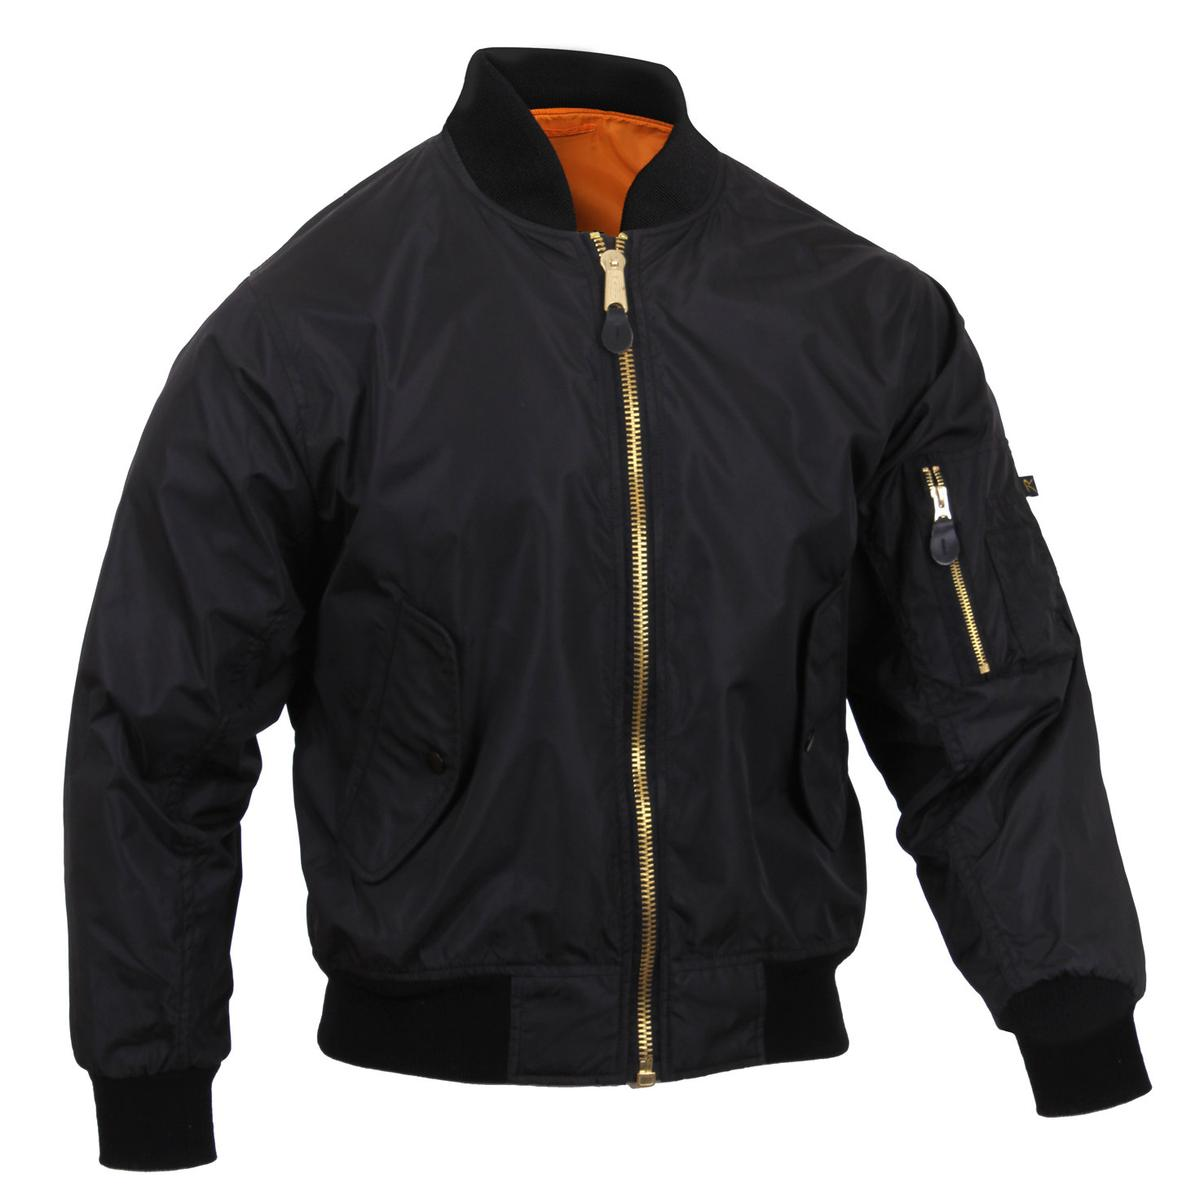 5217243deb37 The bomber jacket also features two front slash pockets with snap down  flaps